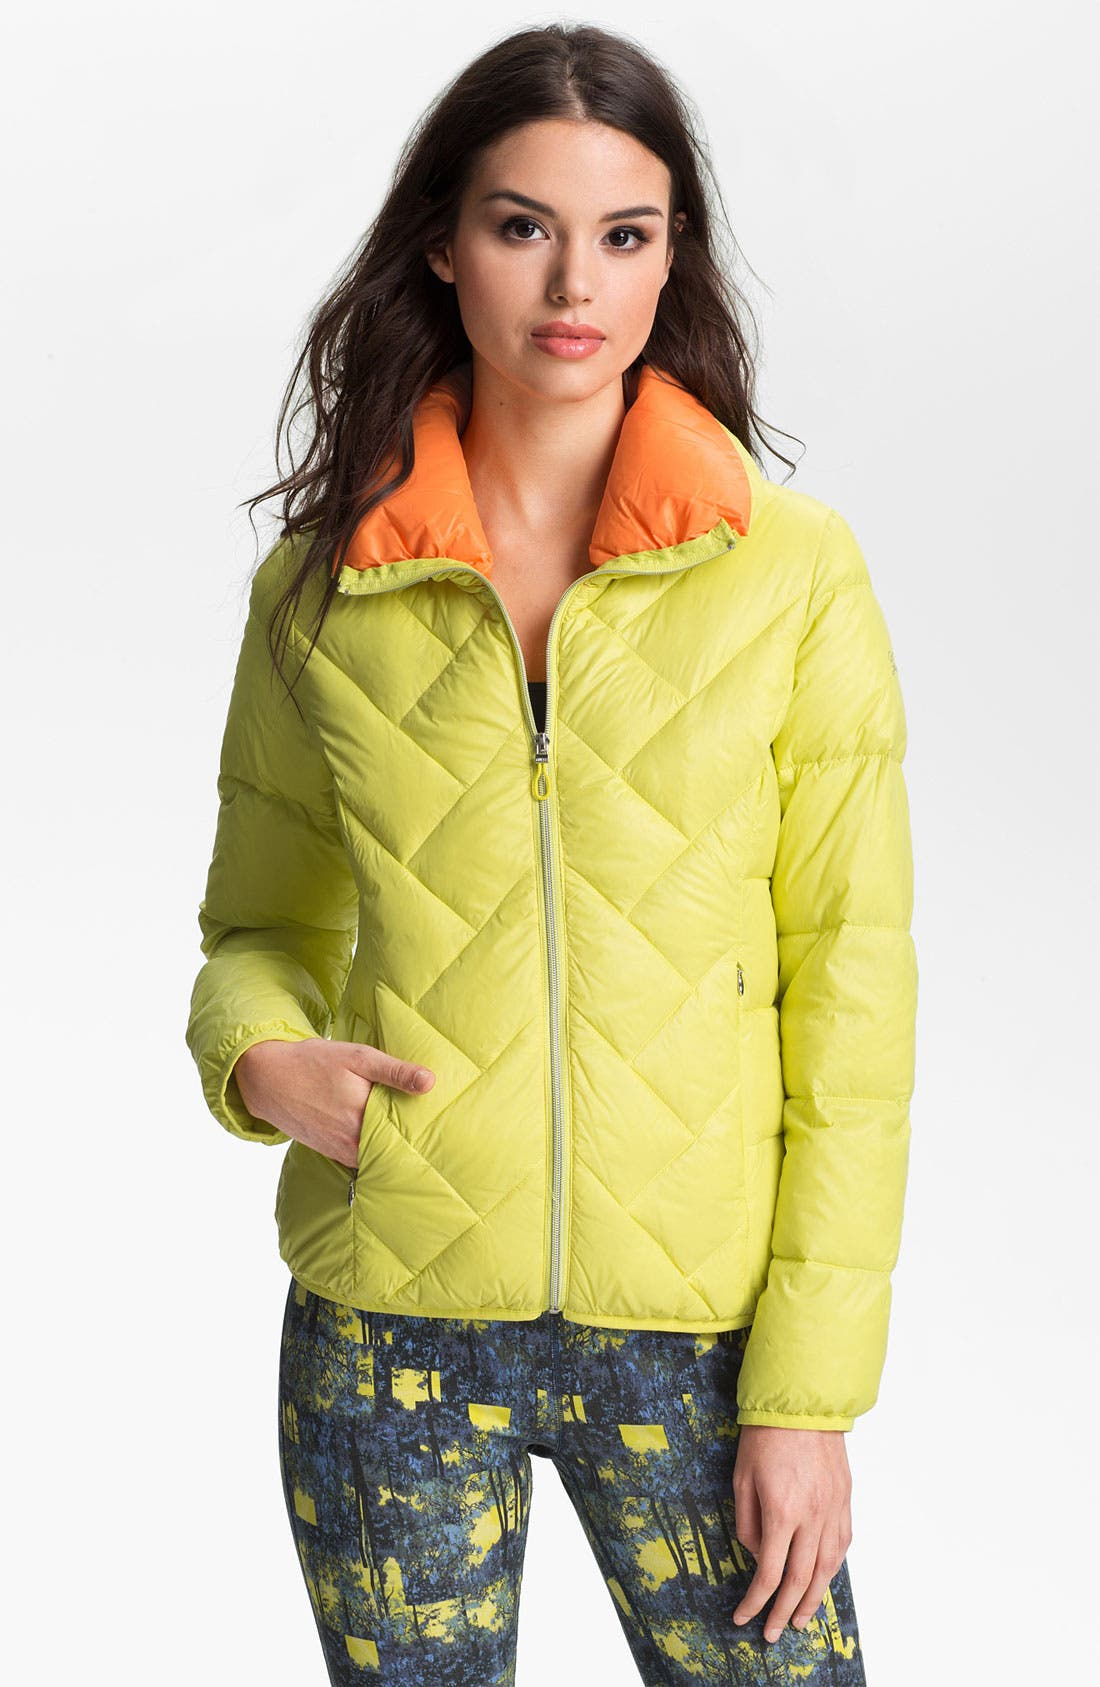 Alternate Image 1 Selected - GUESS Two Tone Down Jacket (Online Exclusive)